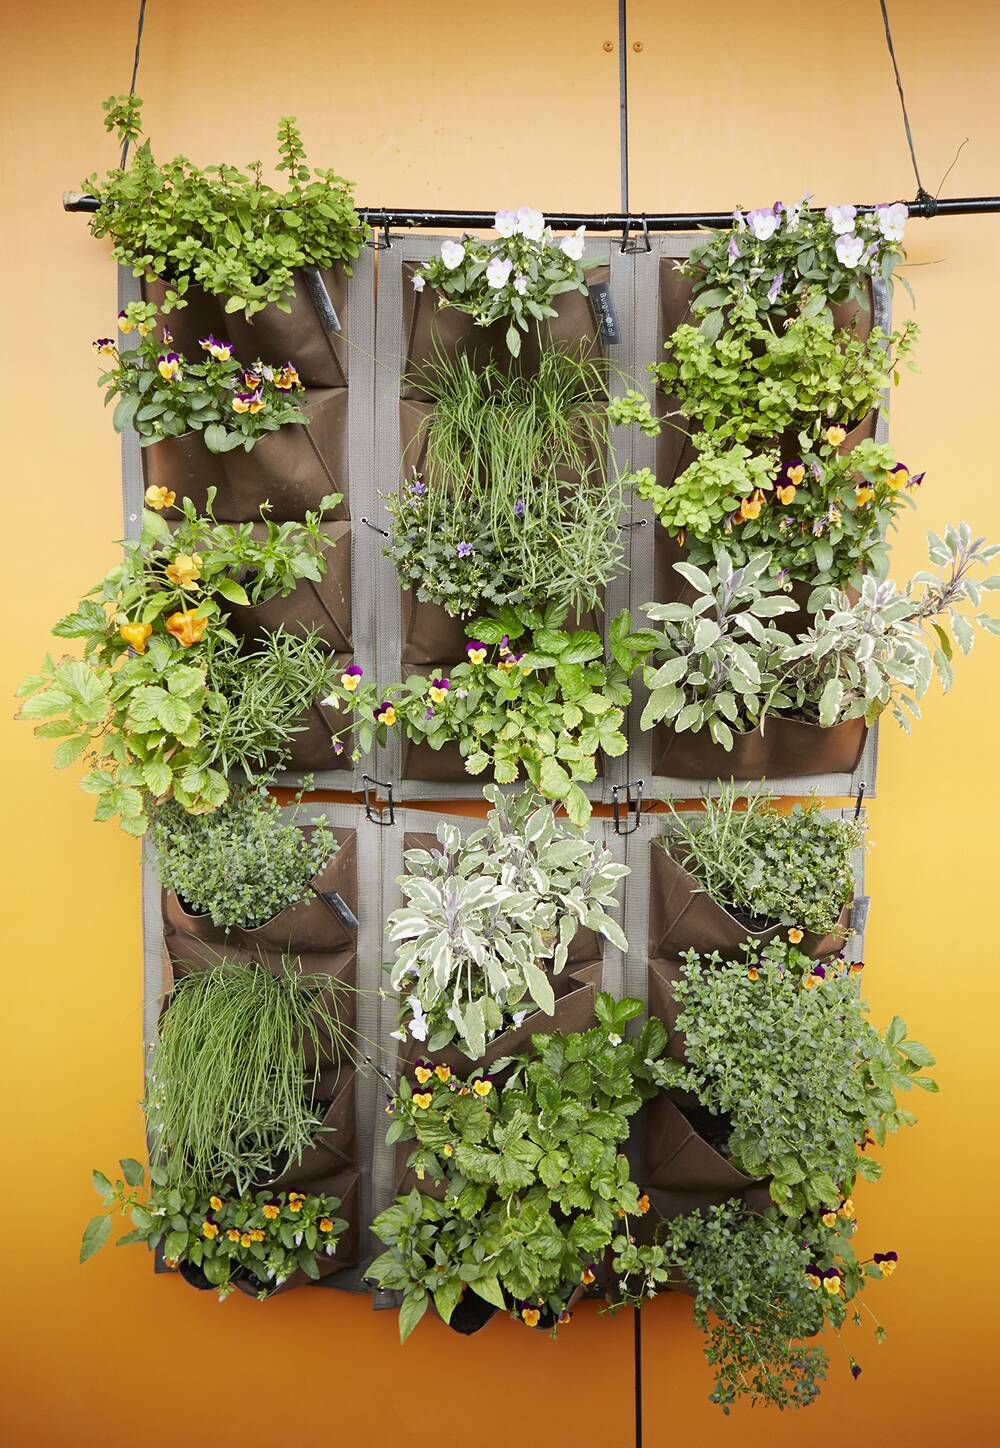 How to Grow a Vertical Garden | Real Simple